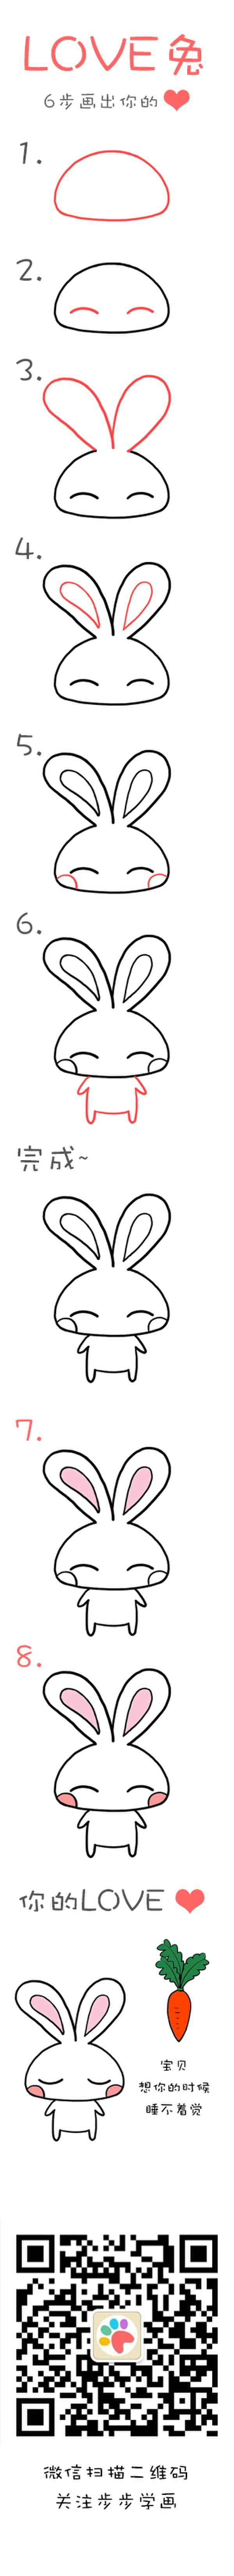 Learn how to draw the LOVE rabbit